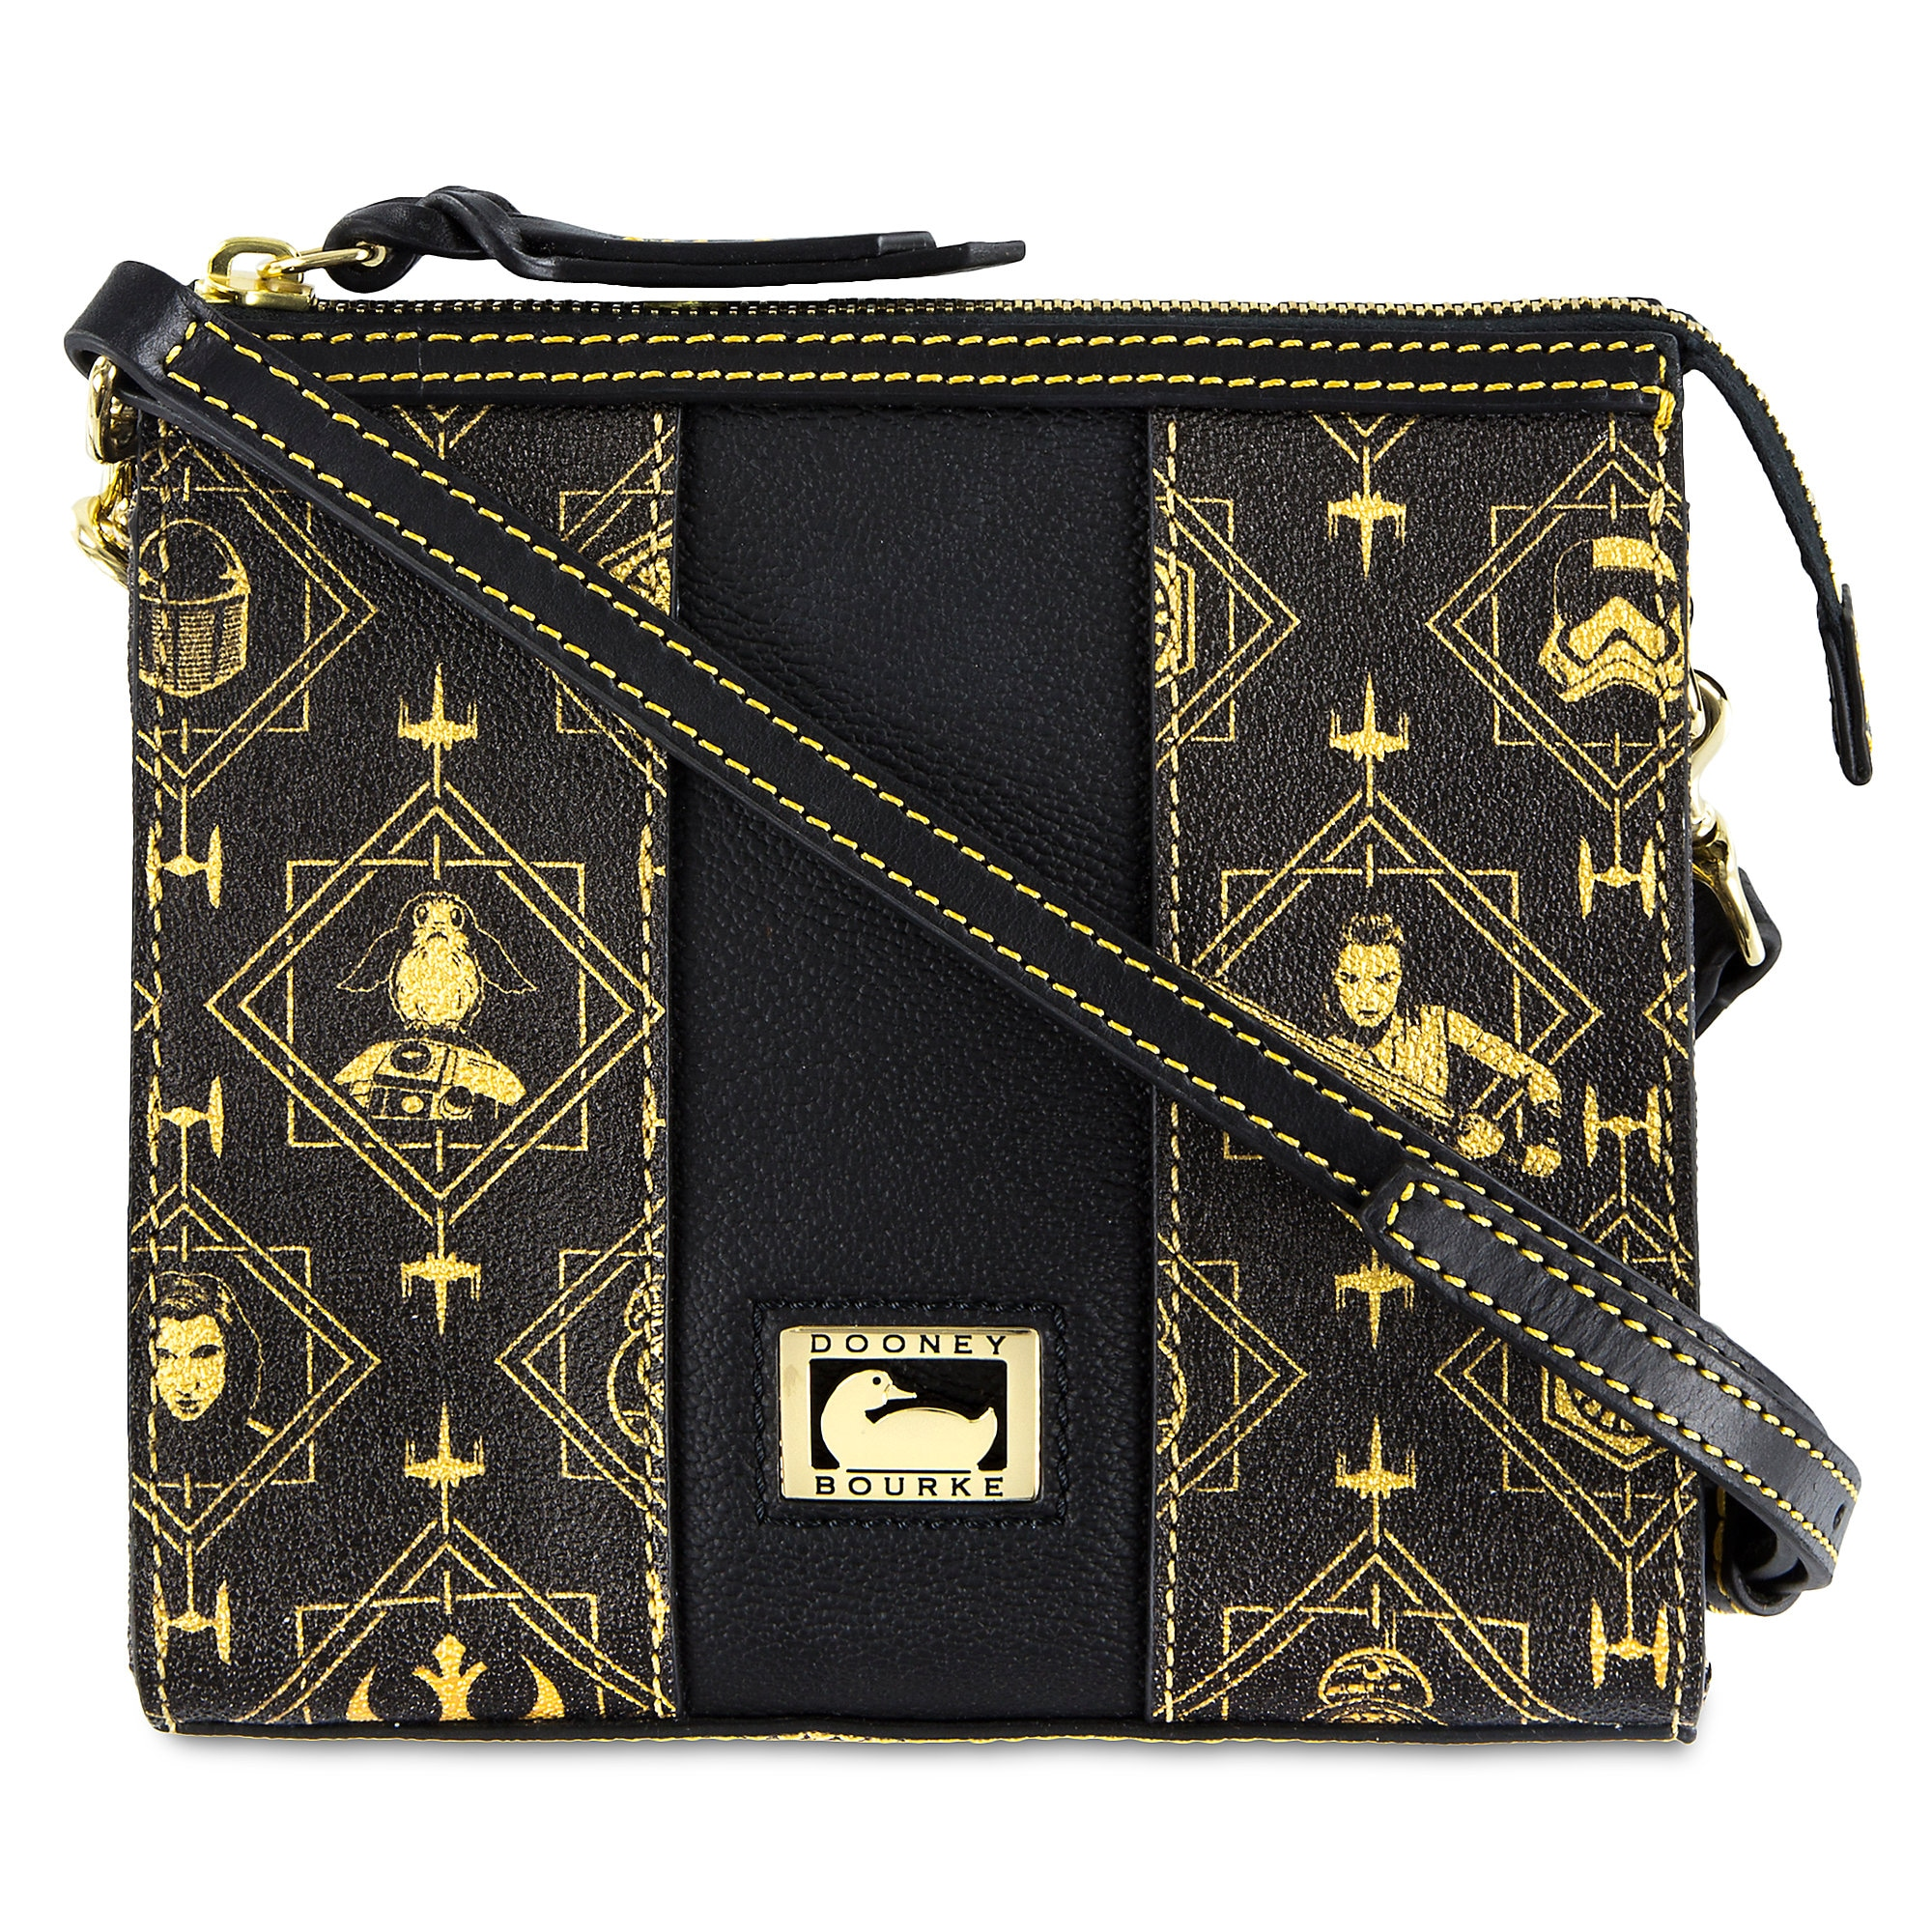 Star Wars: The Last Jedi Crossbody Bag by Dooney & Bourke